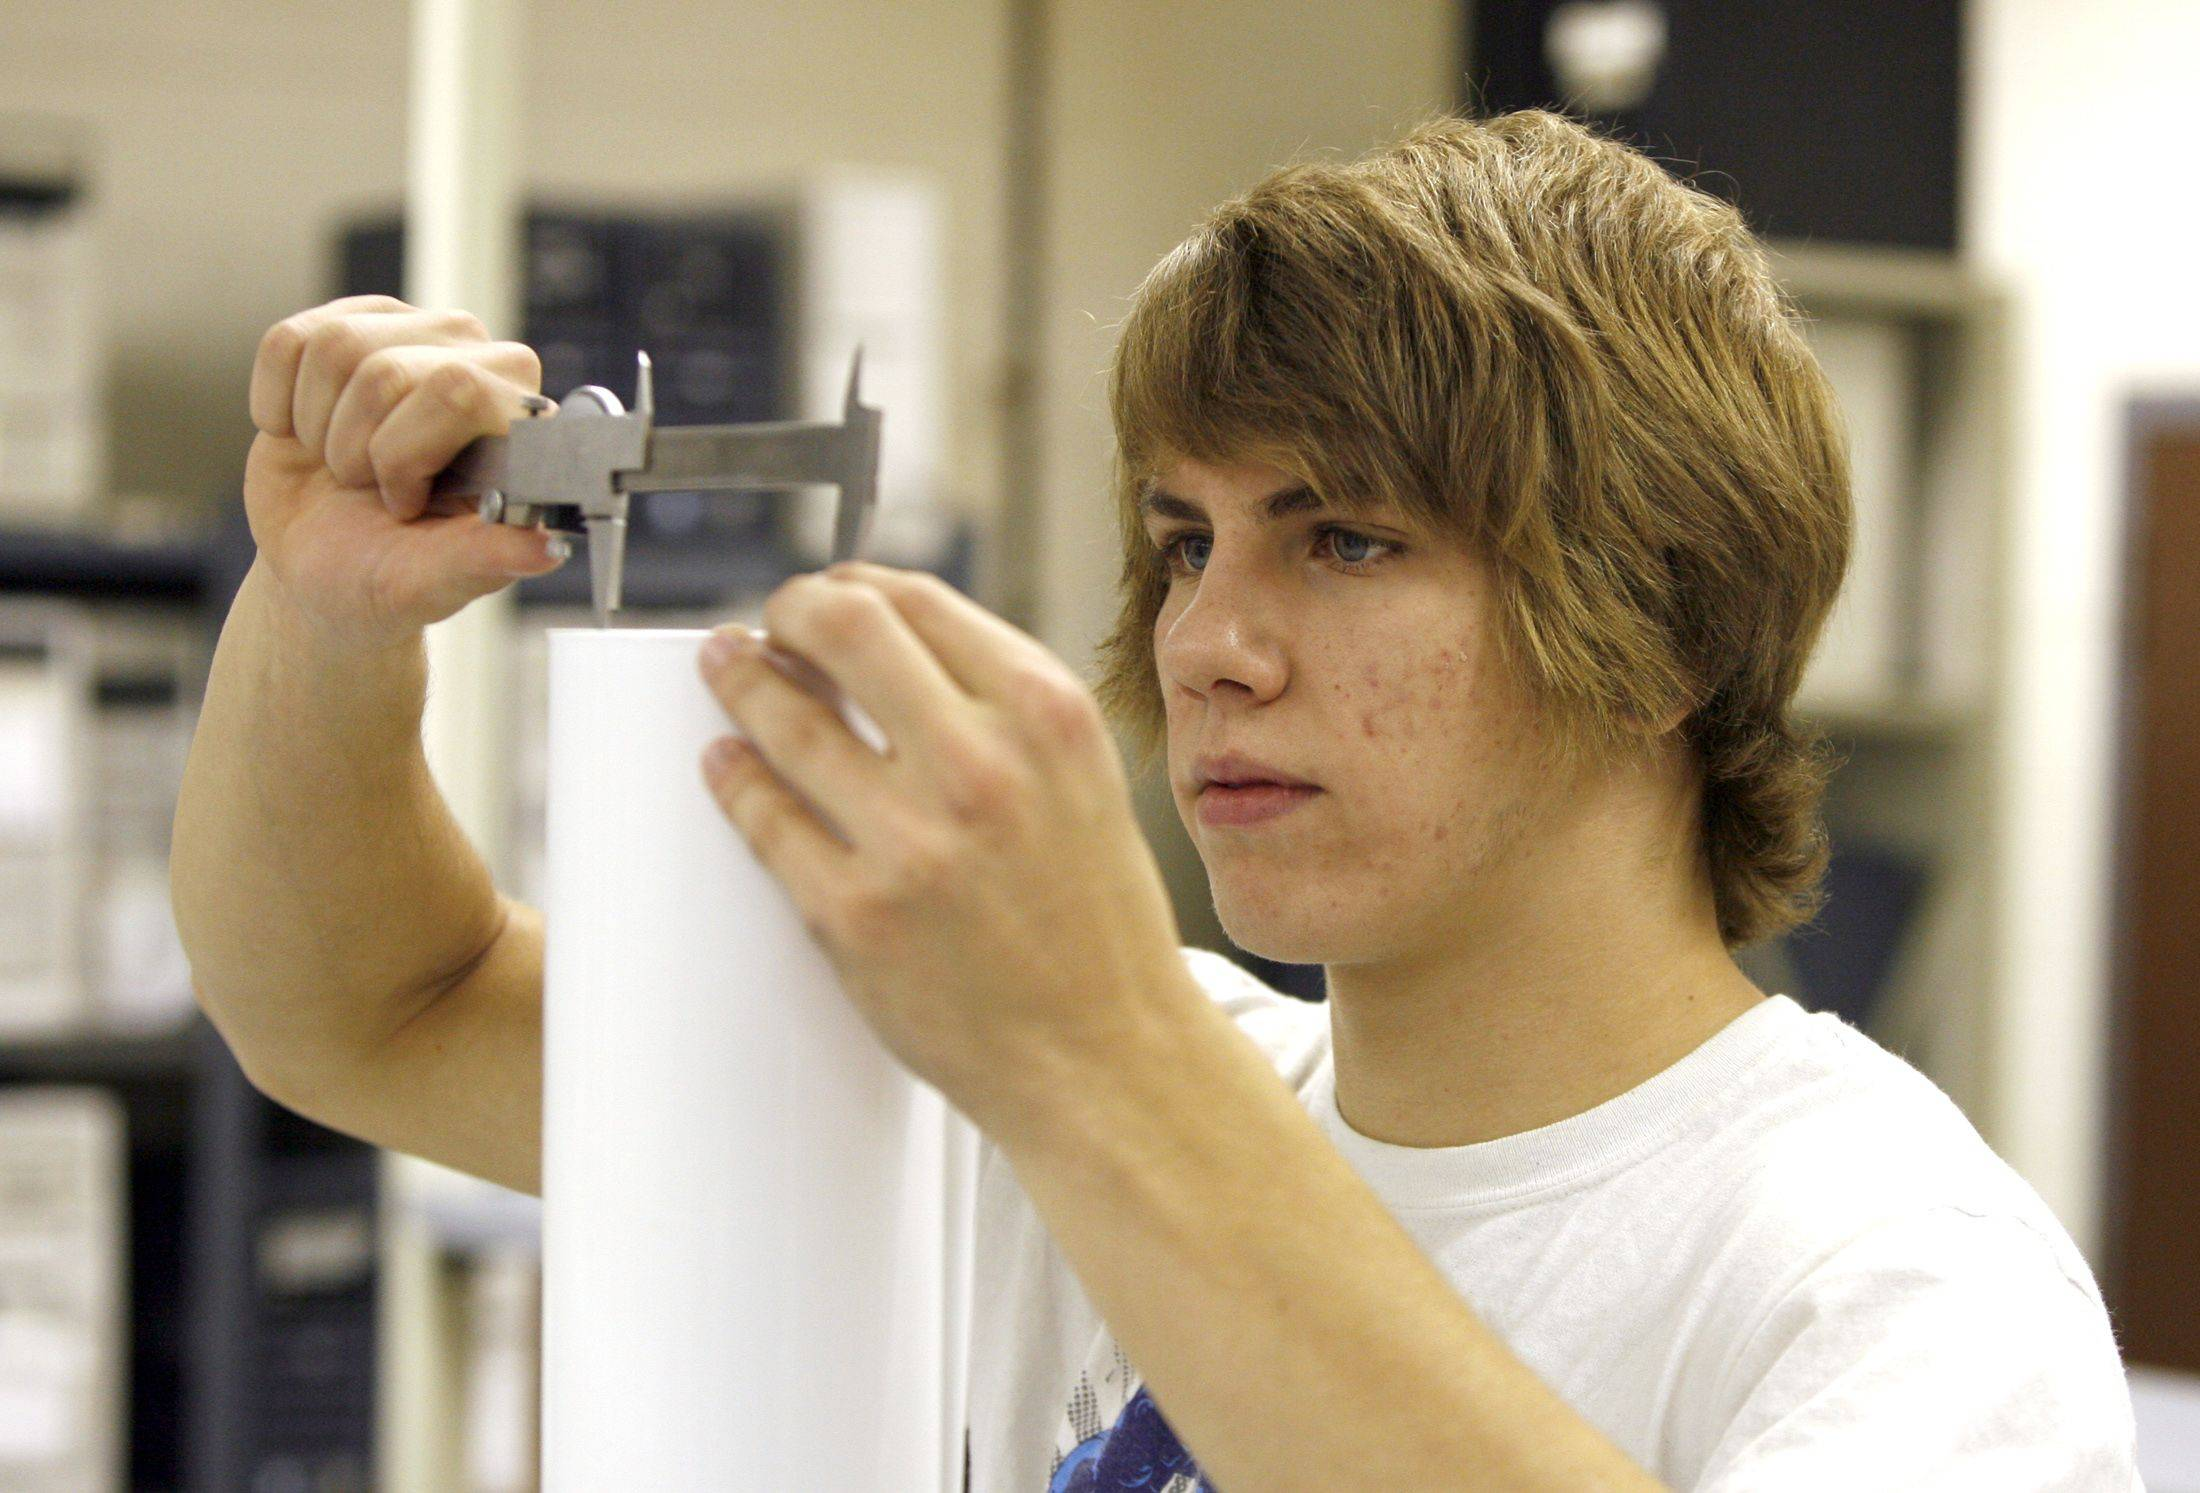 Norman Vitellaro III measures diameter and height to find volume and surface area in his introductory engineering class.